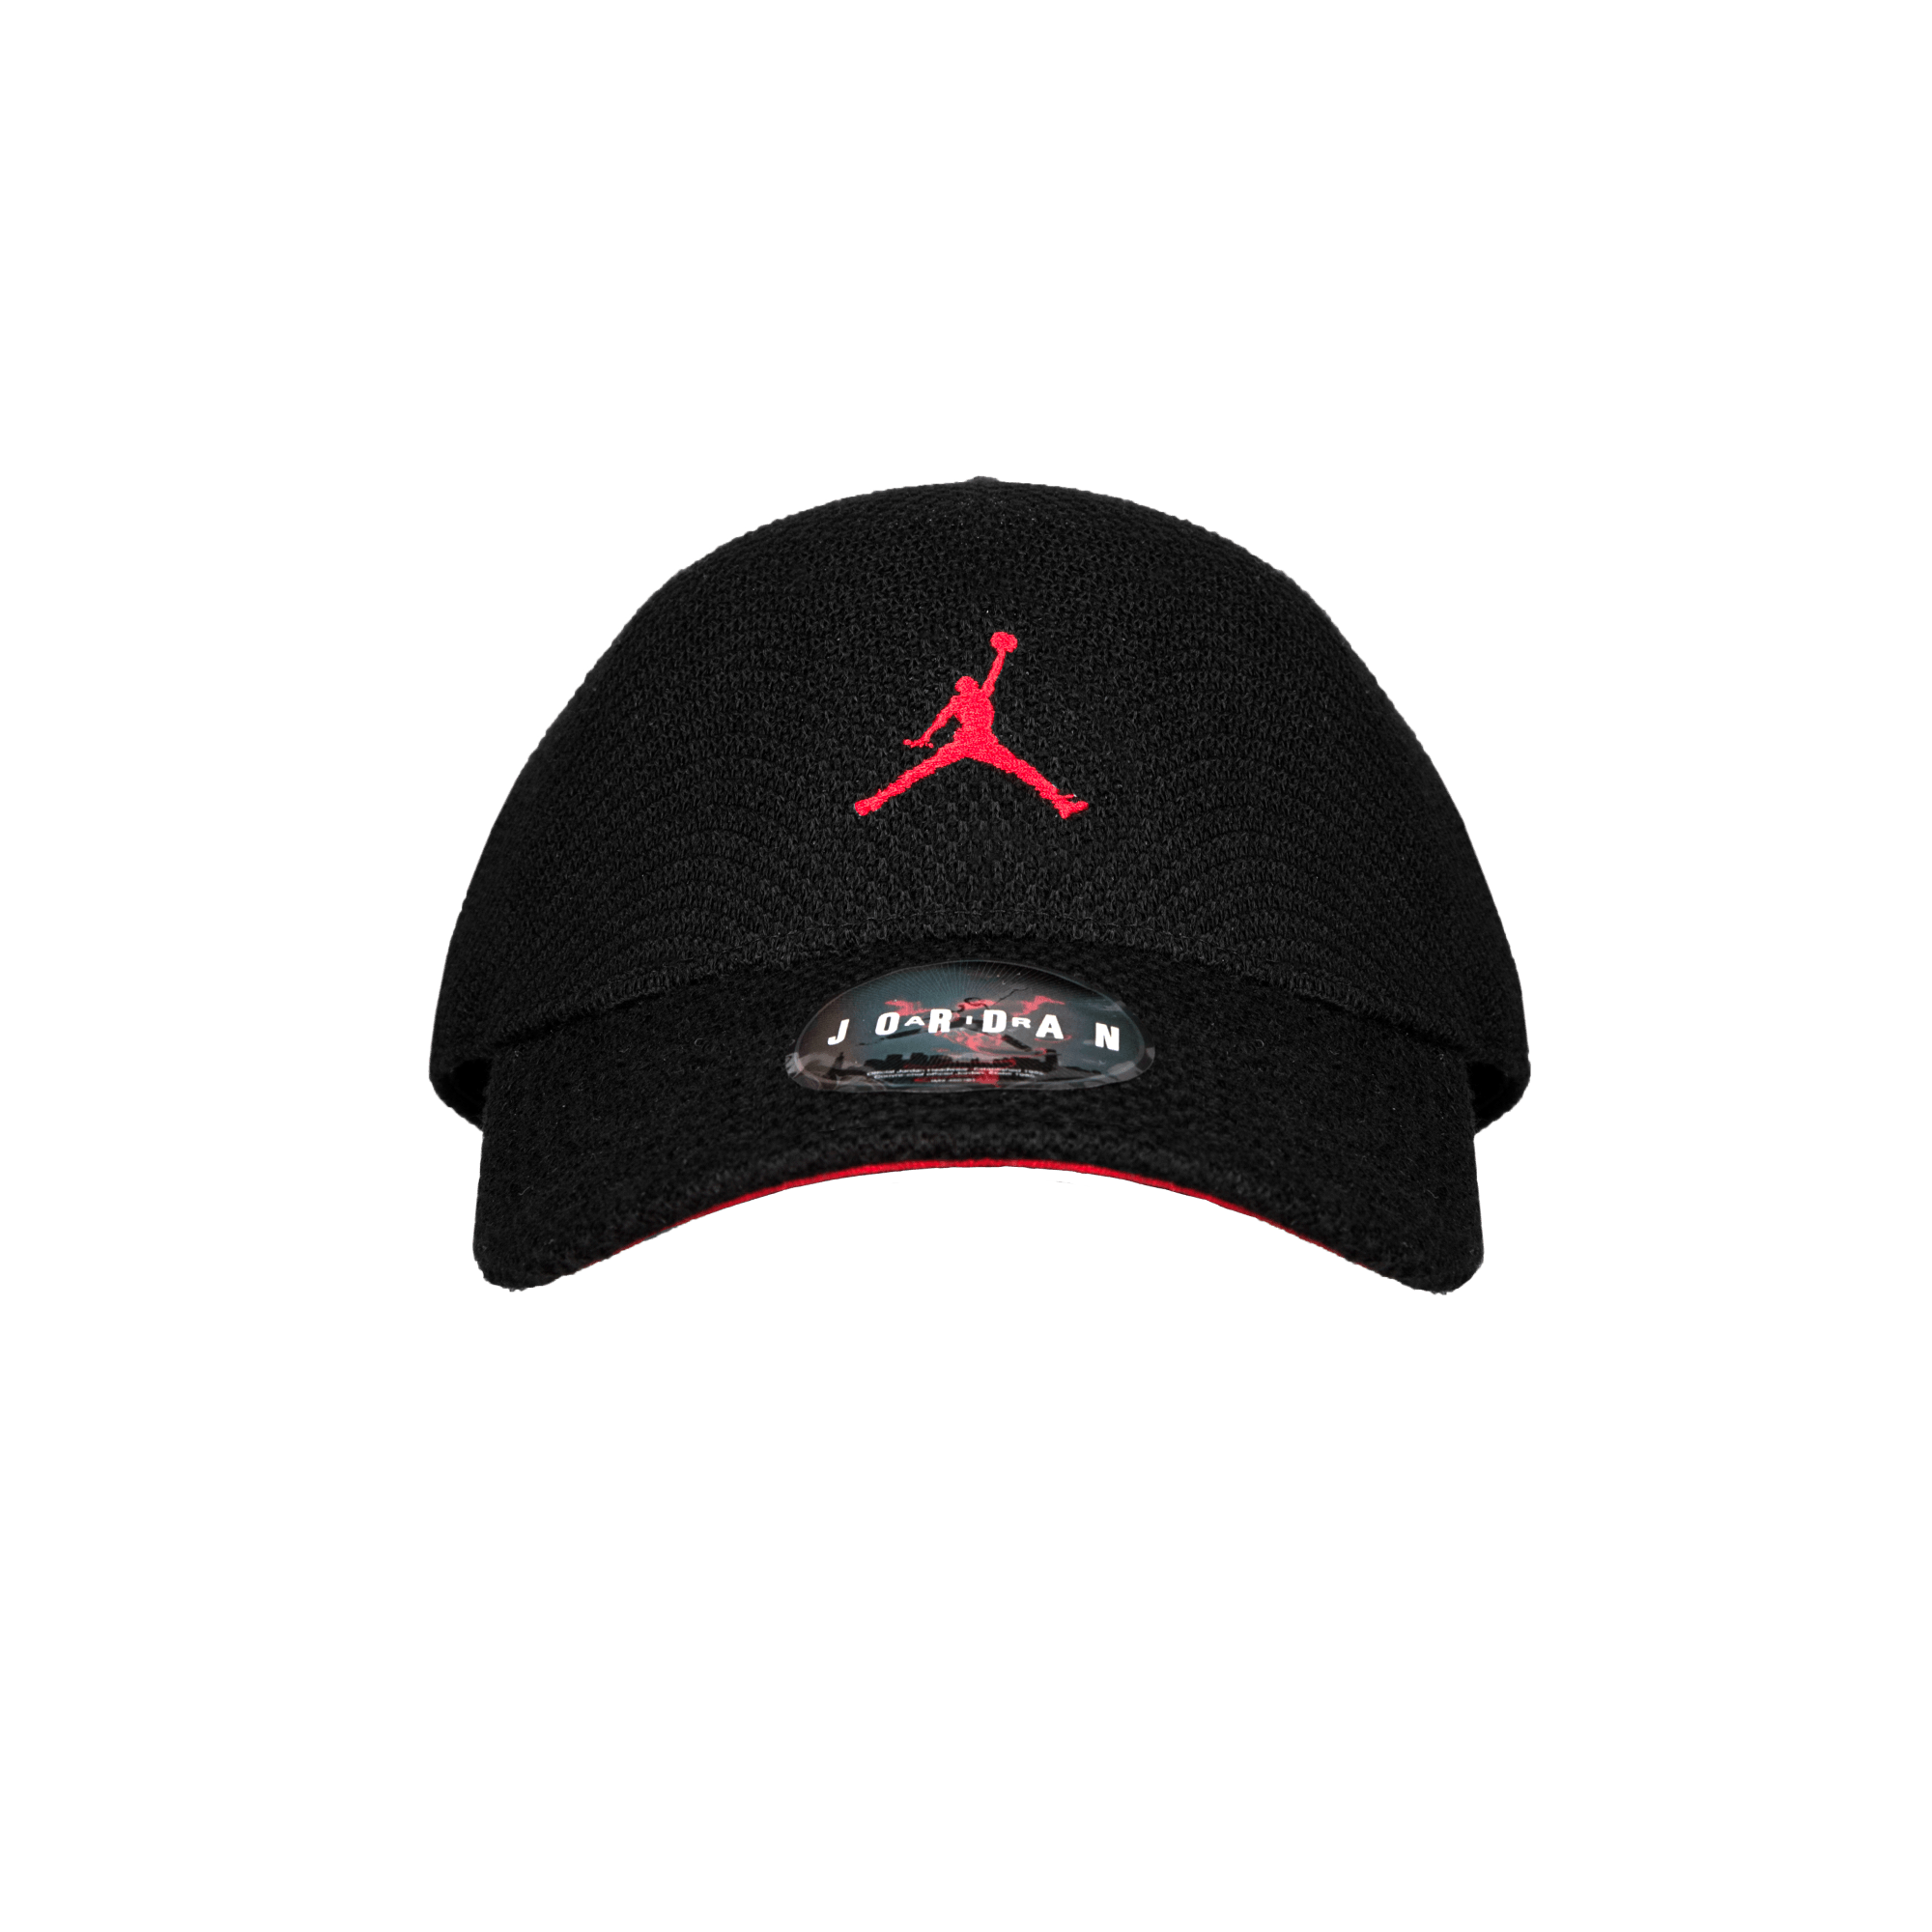 74c72b551 Air Jordan Jumpman Knit Flex Cap black/red - Caps | Holypopstore.com